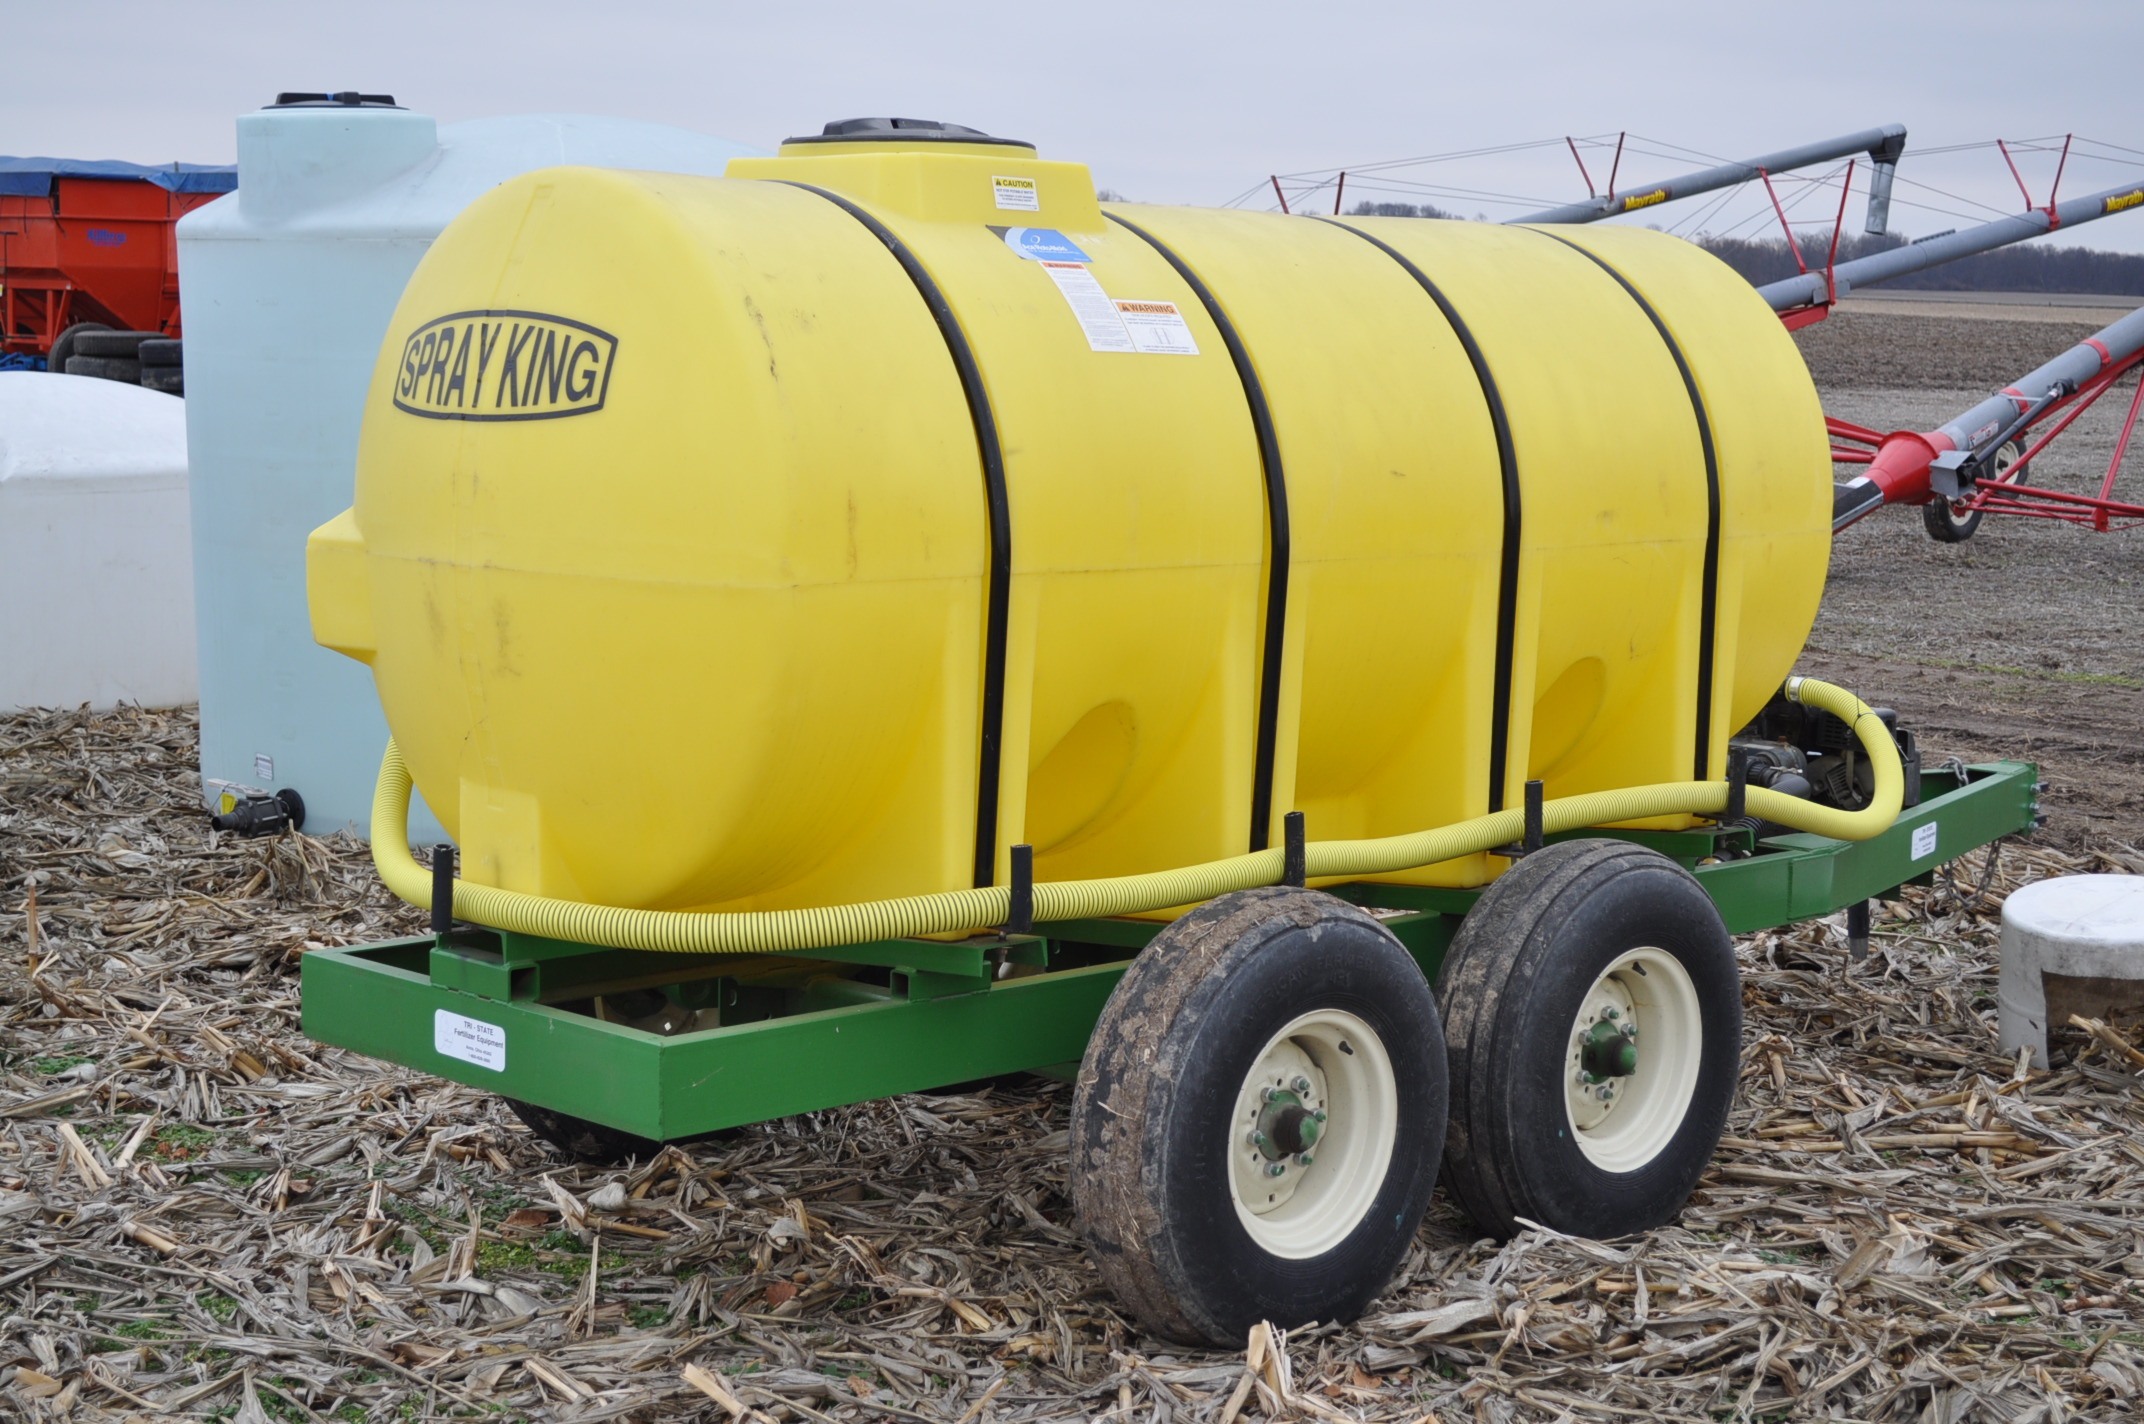 "1000 gallon Spray King tender trailer, tandem axle, 2"" Briggs & Stratton engine, 11L-15 tires - Image 3 of 12"